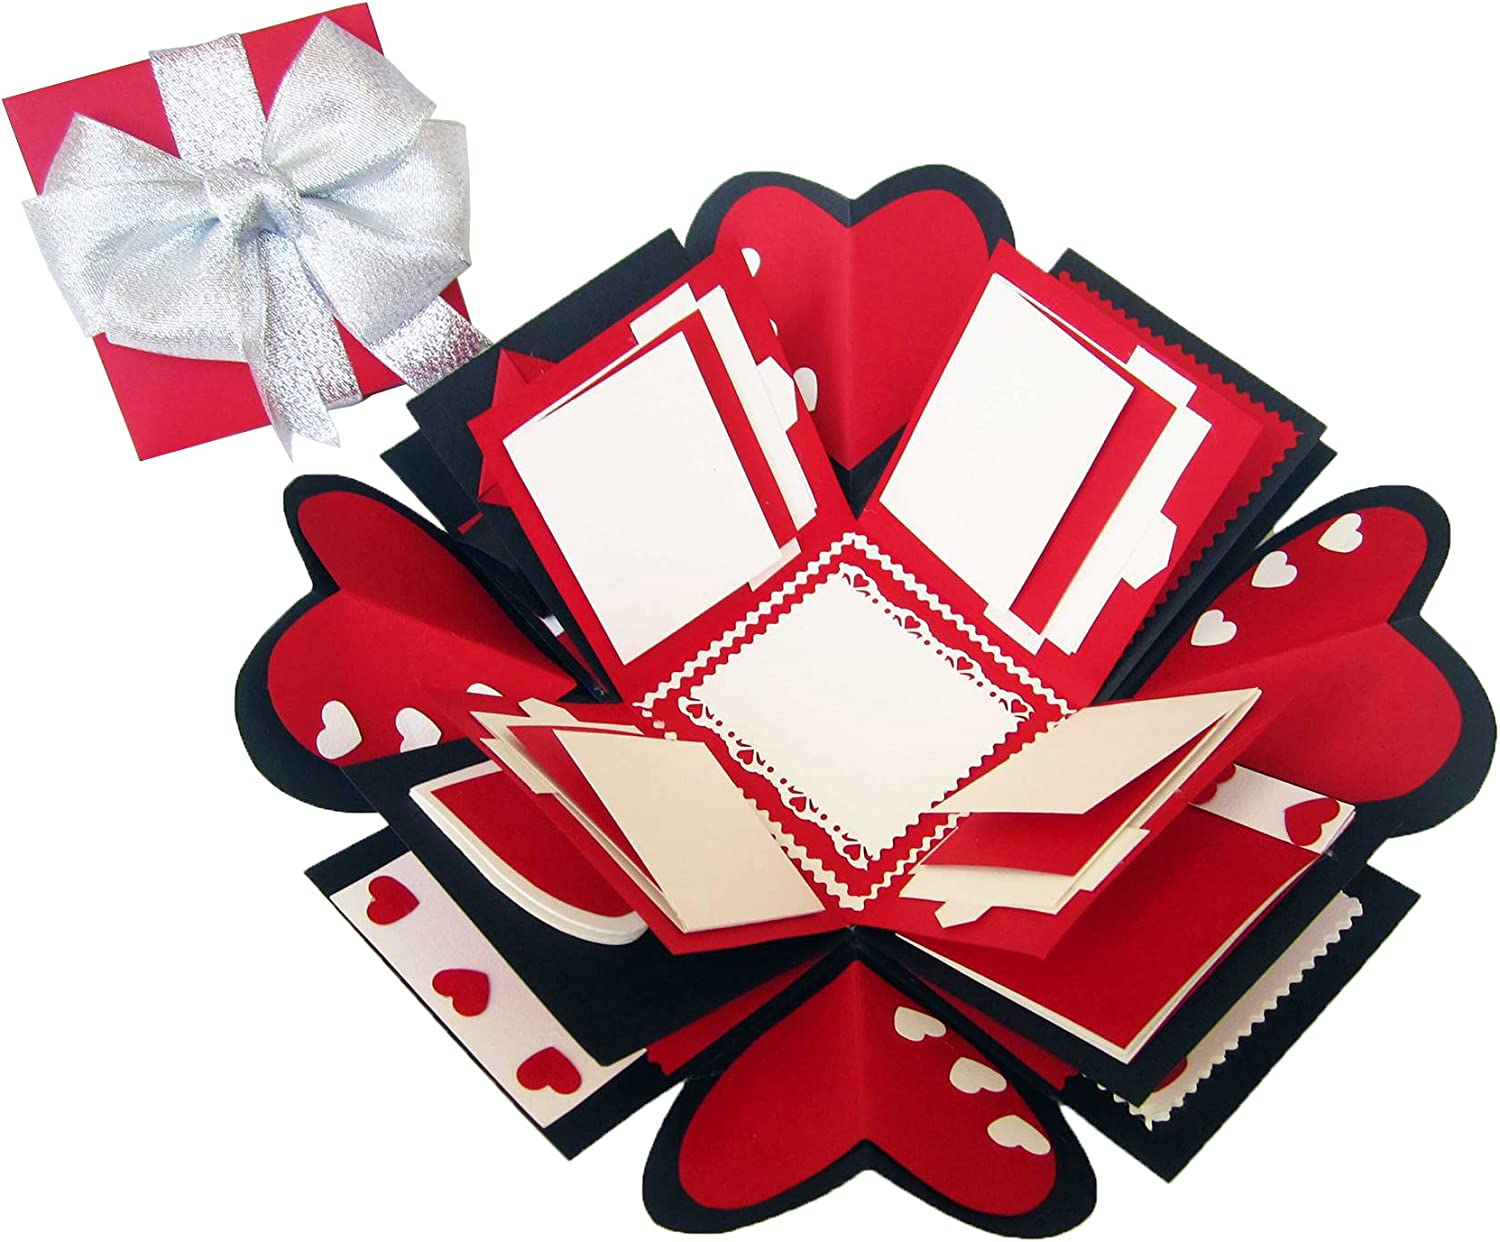 Love Explosion Gift Box Photo Album Red 100 Handmade With Craft Paper Arts Crafts Sewing